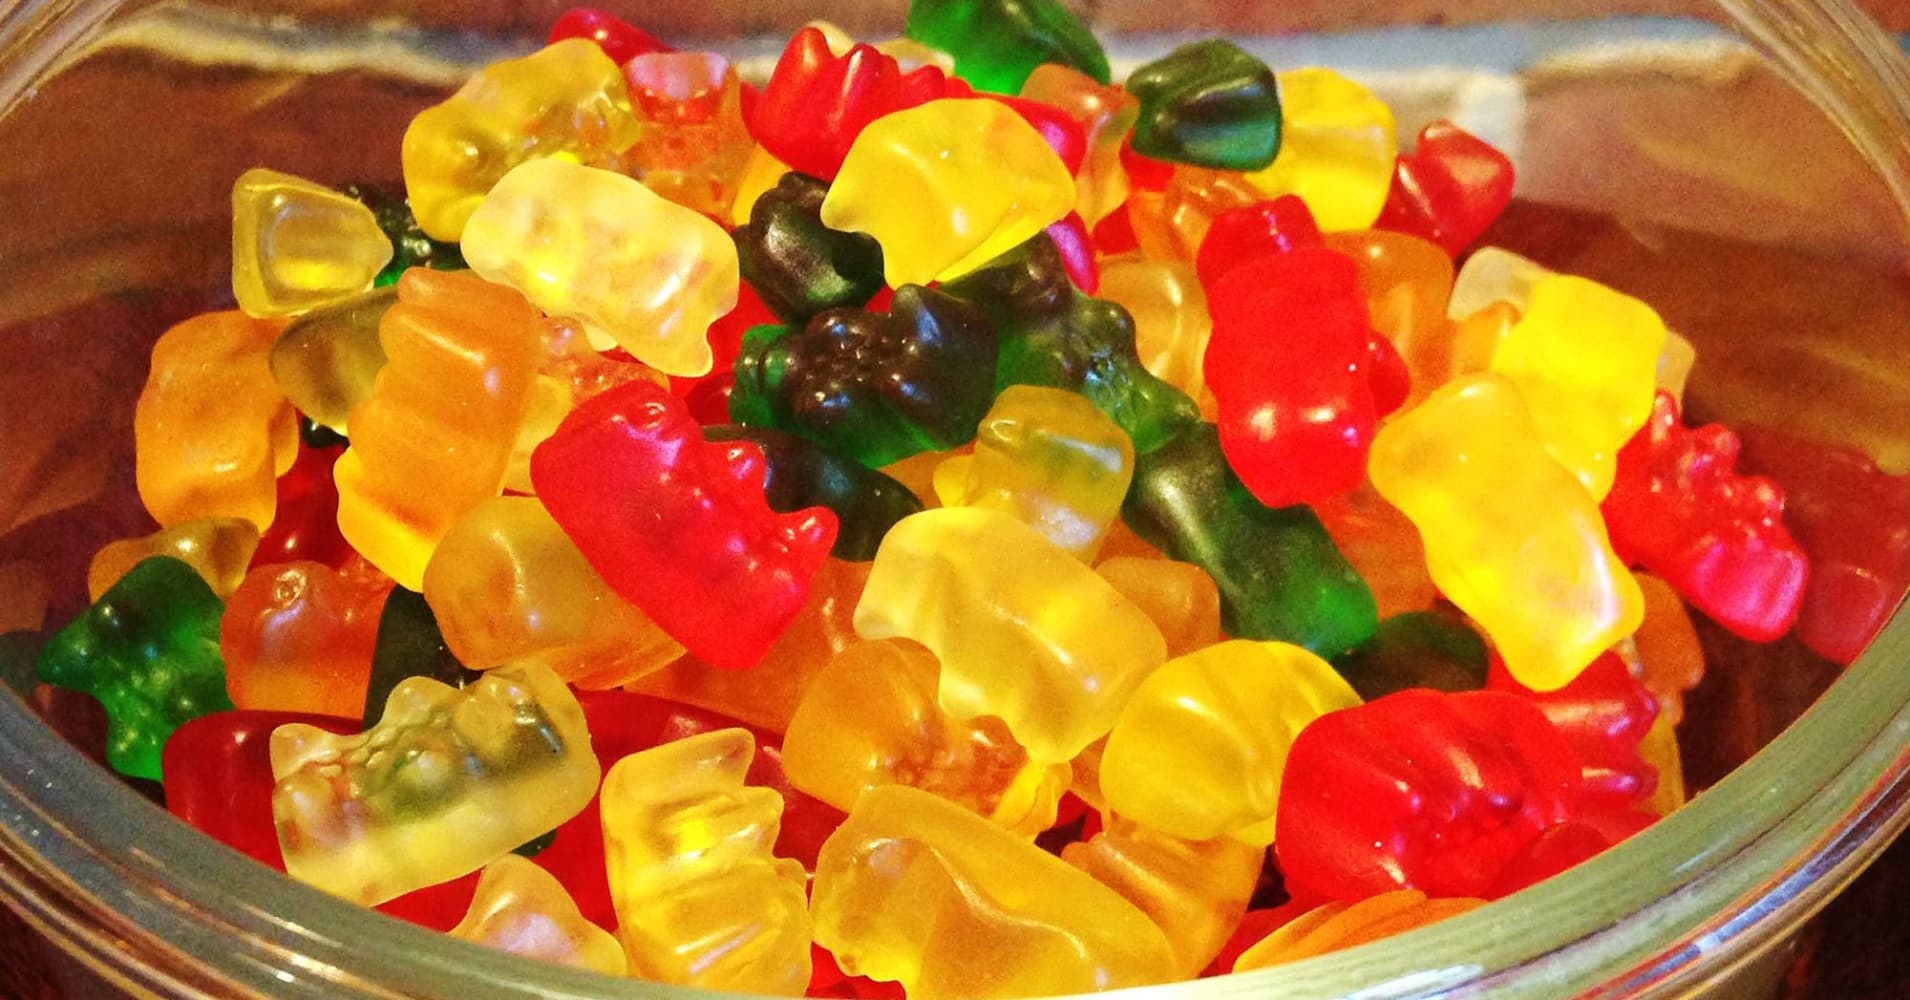 Iconic Haribo gummy bears will be soon be 'Made in the USA'